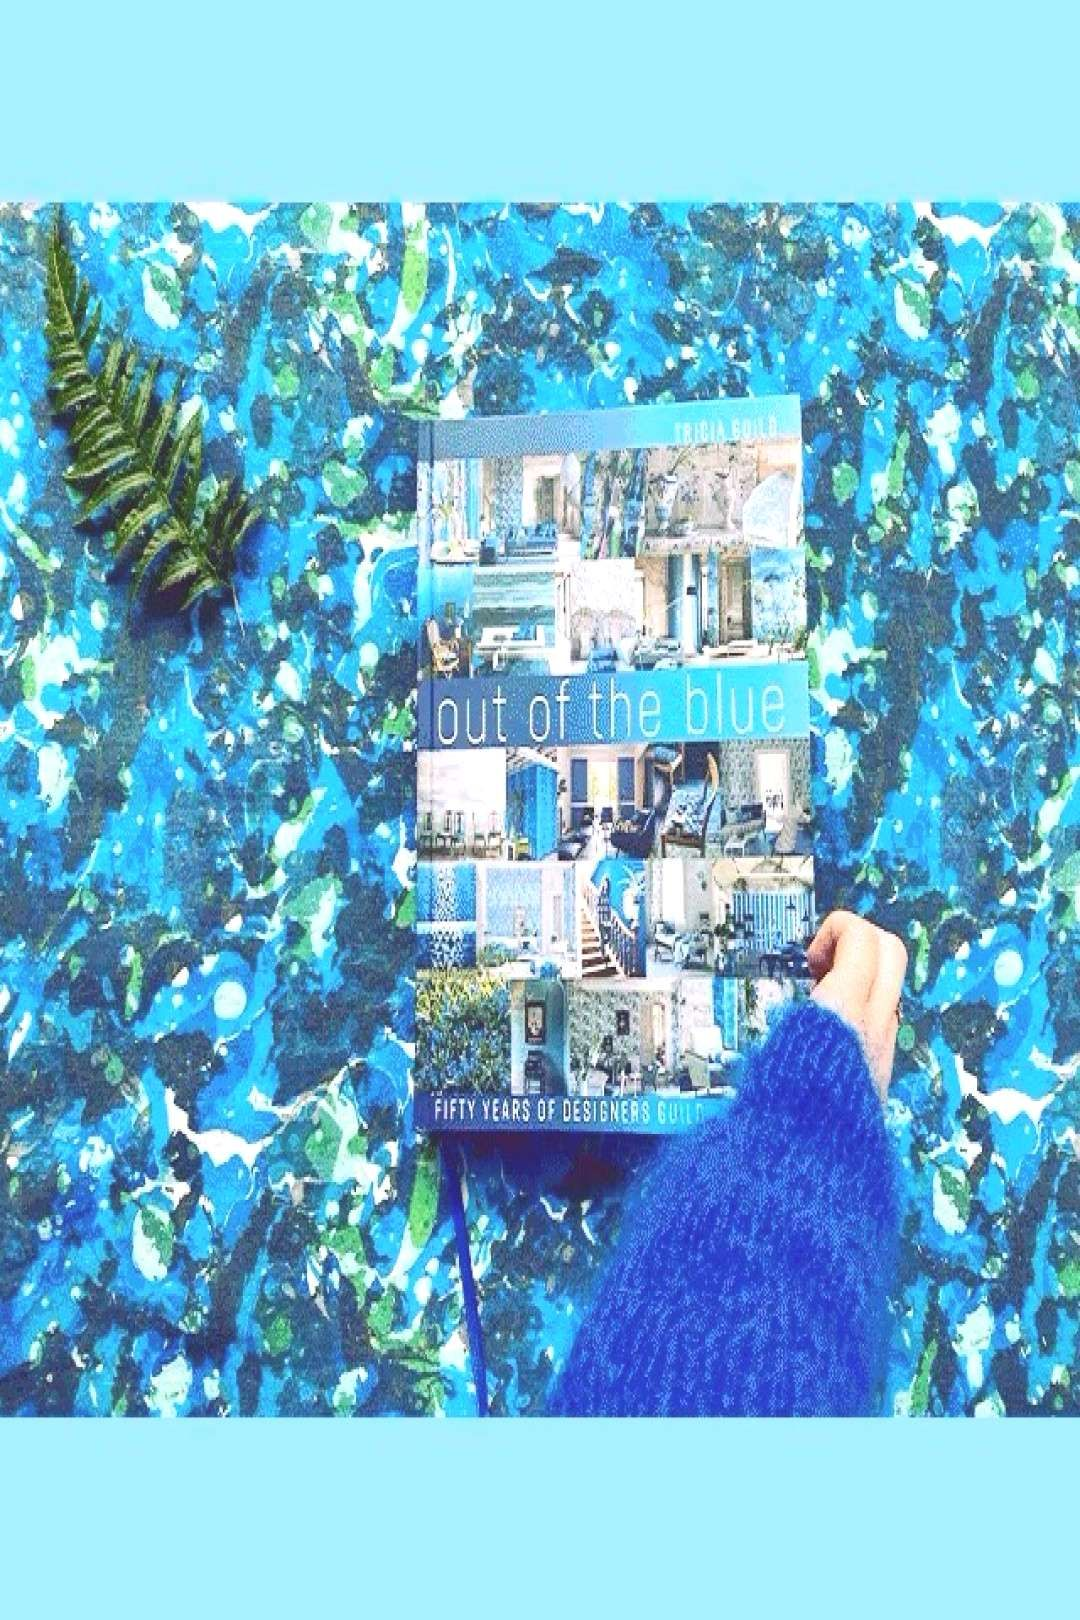 #designersguild #celebratin #available #online #blue #book #out #the #now #new #of #a Out of the blue book now available online - A new book celebratinYou can find Designers guild and more on our website.Out of the blue book...